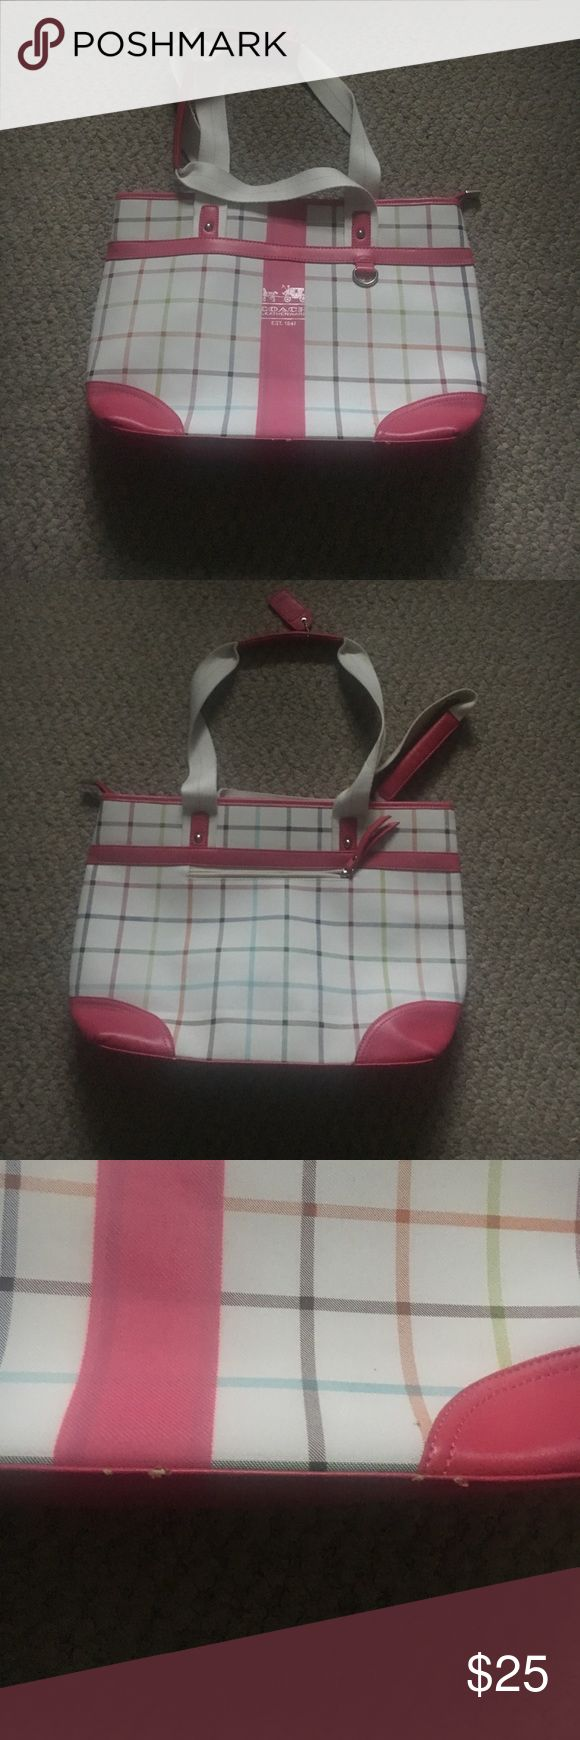 Coach pocketbook This is a coach handbag. Great for summer. Slightly worn as shown. Coach Bags